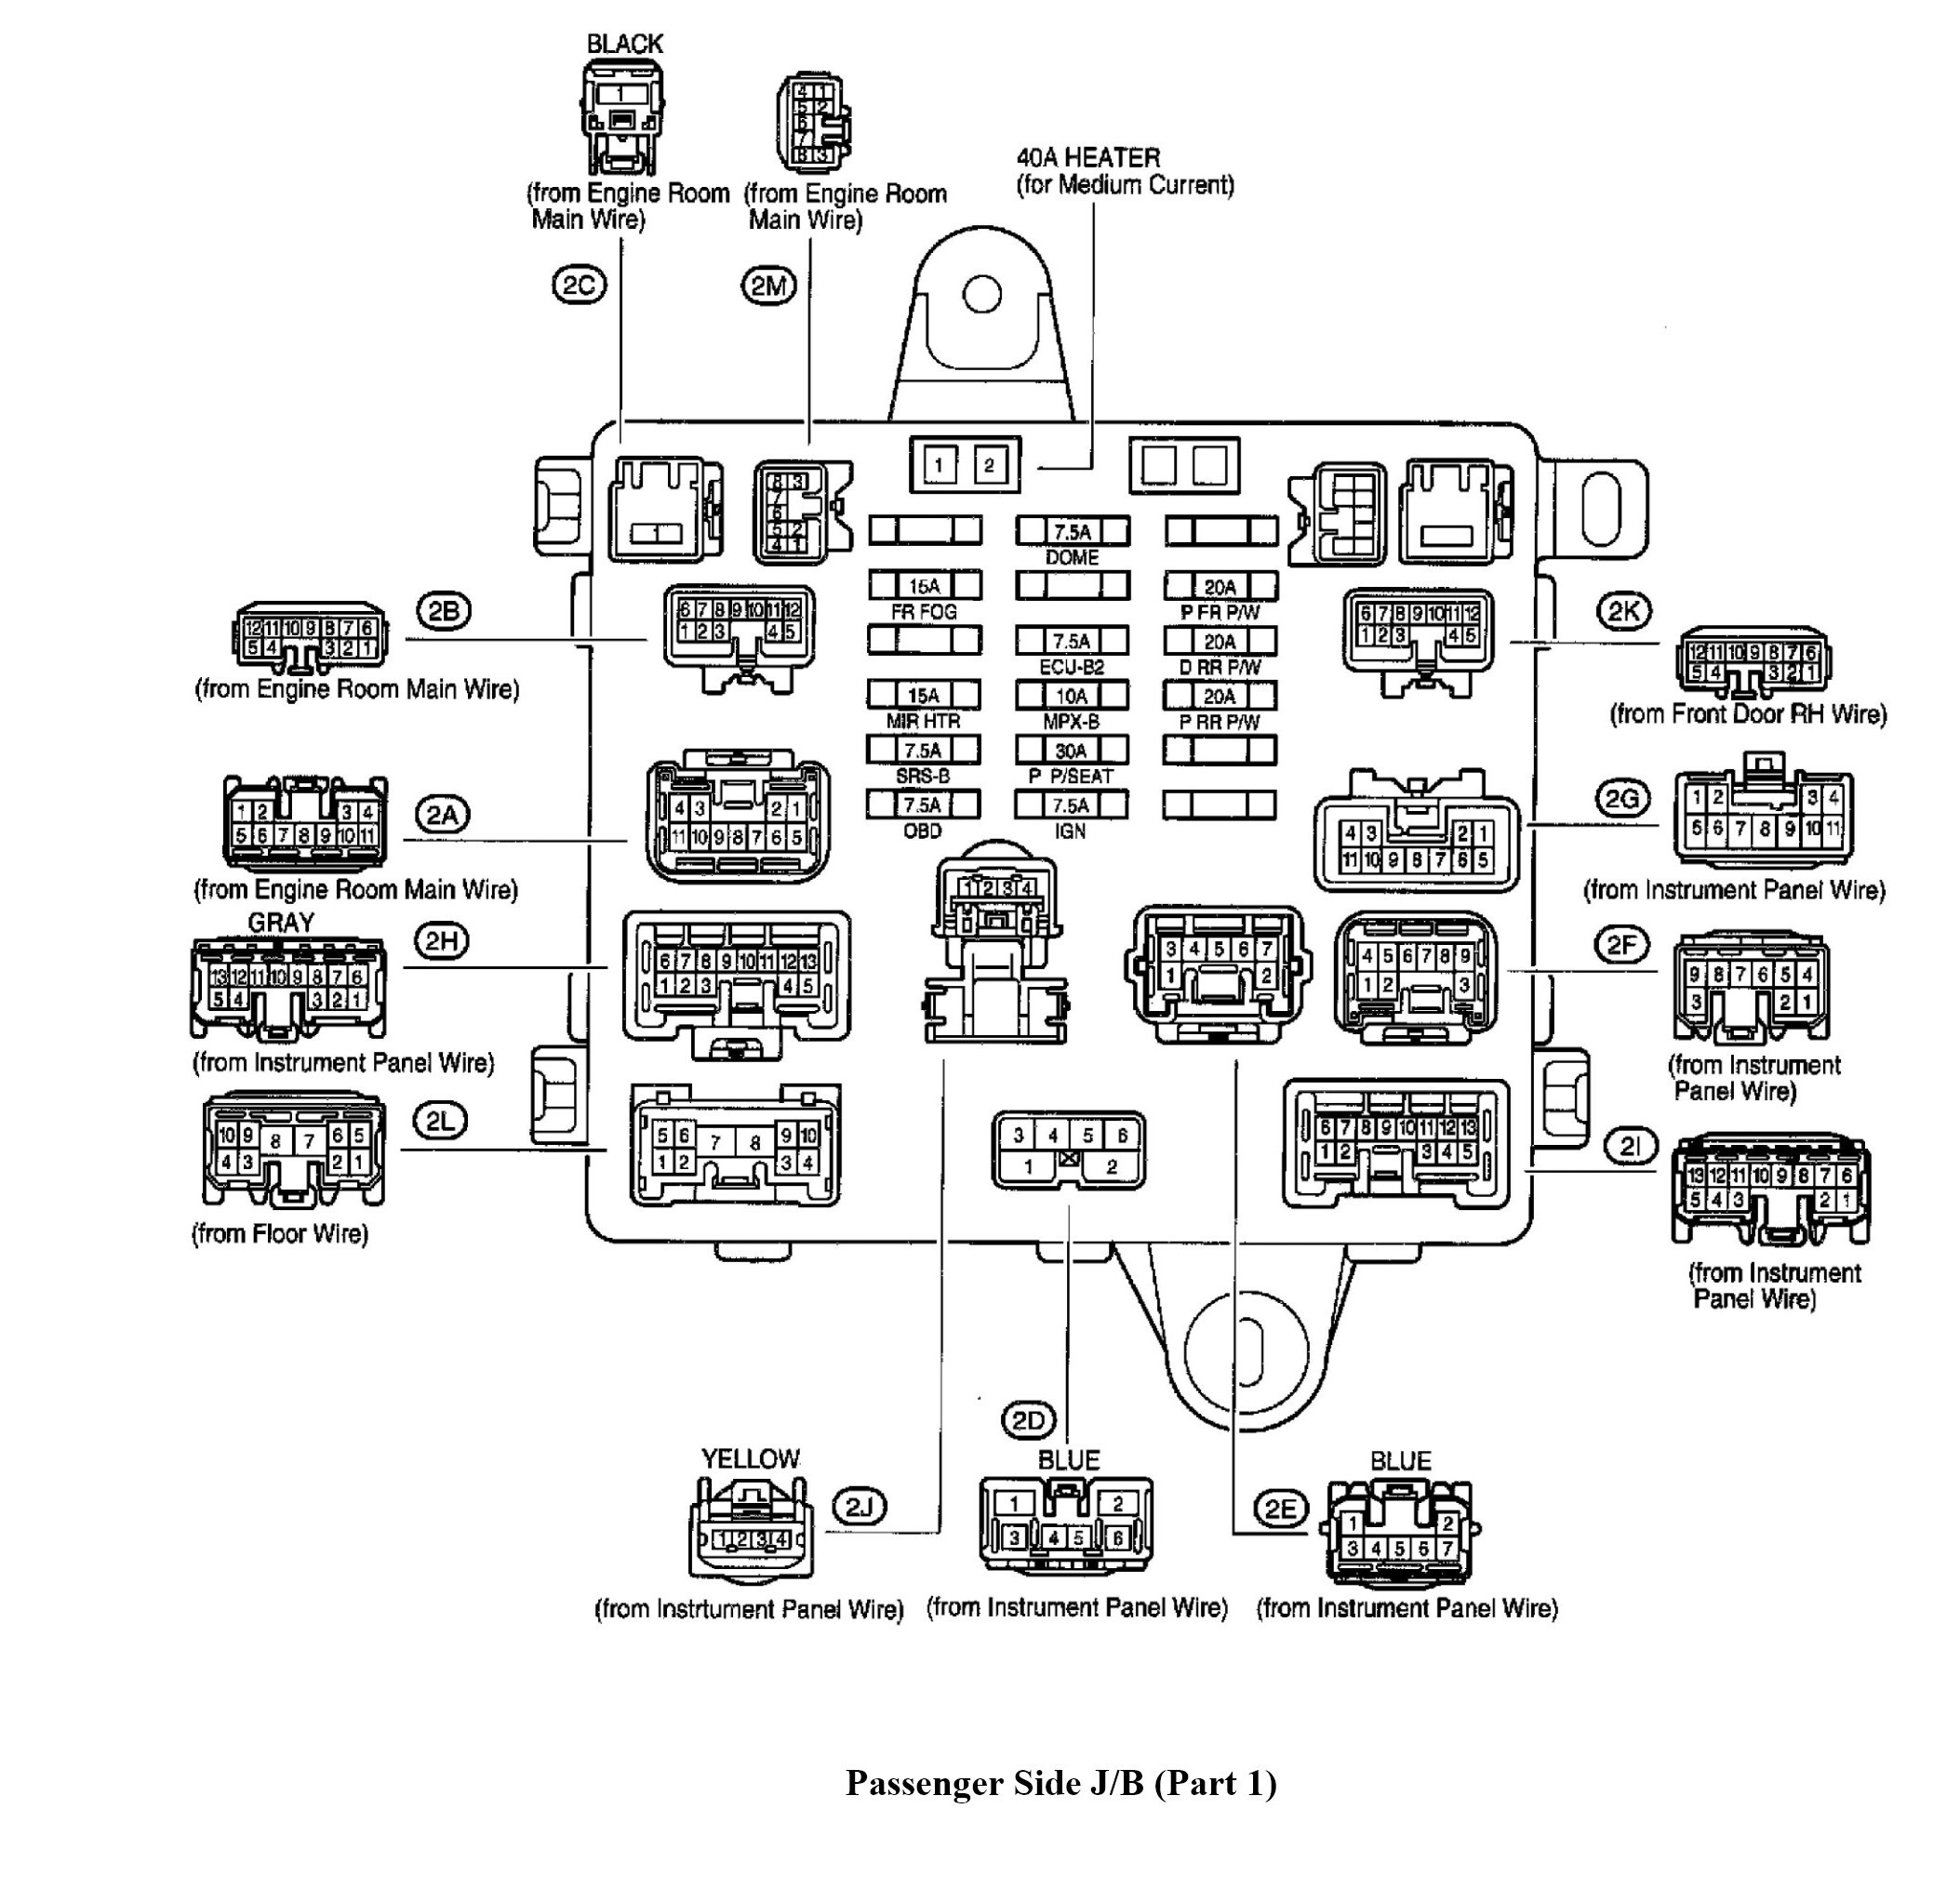 [DIAGRAM] Alternator Lexus Es300 Fuse Box Diagram FULL